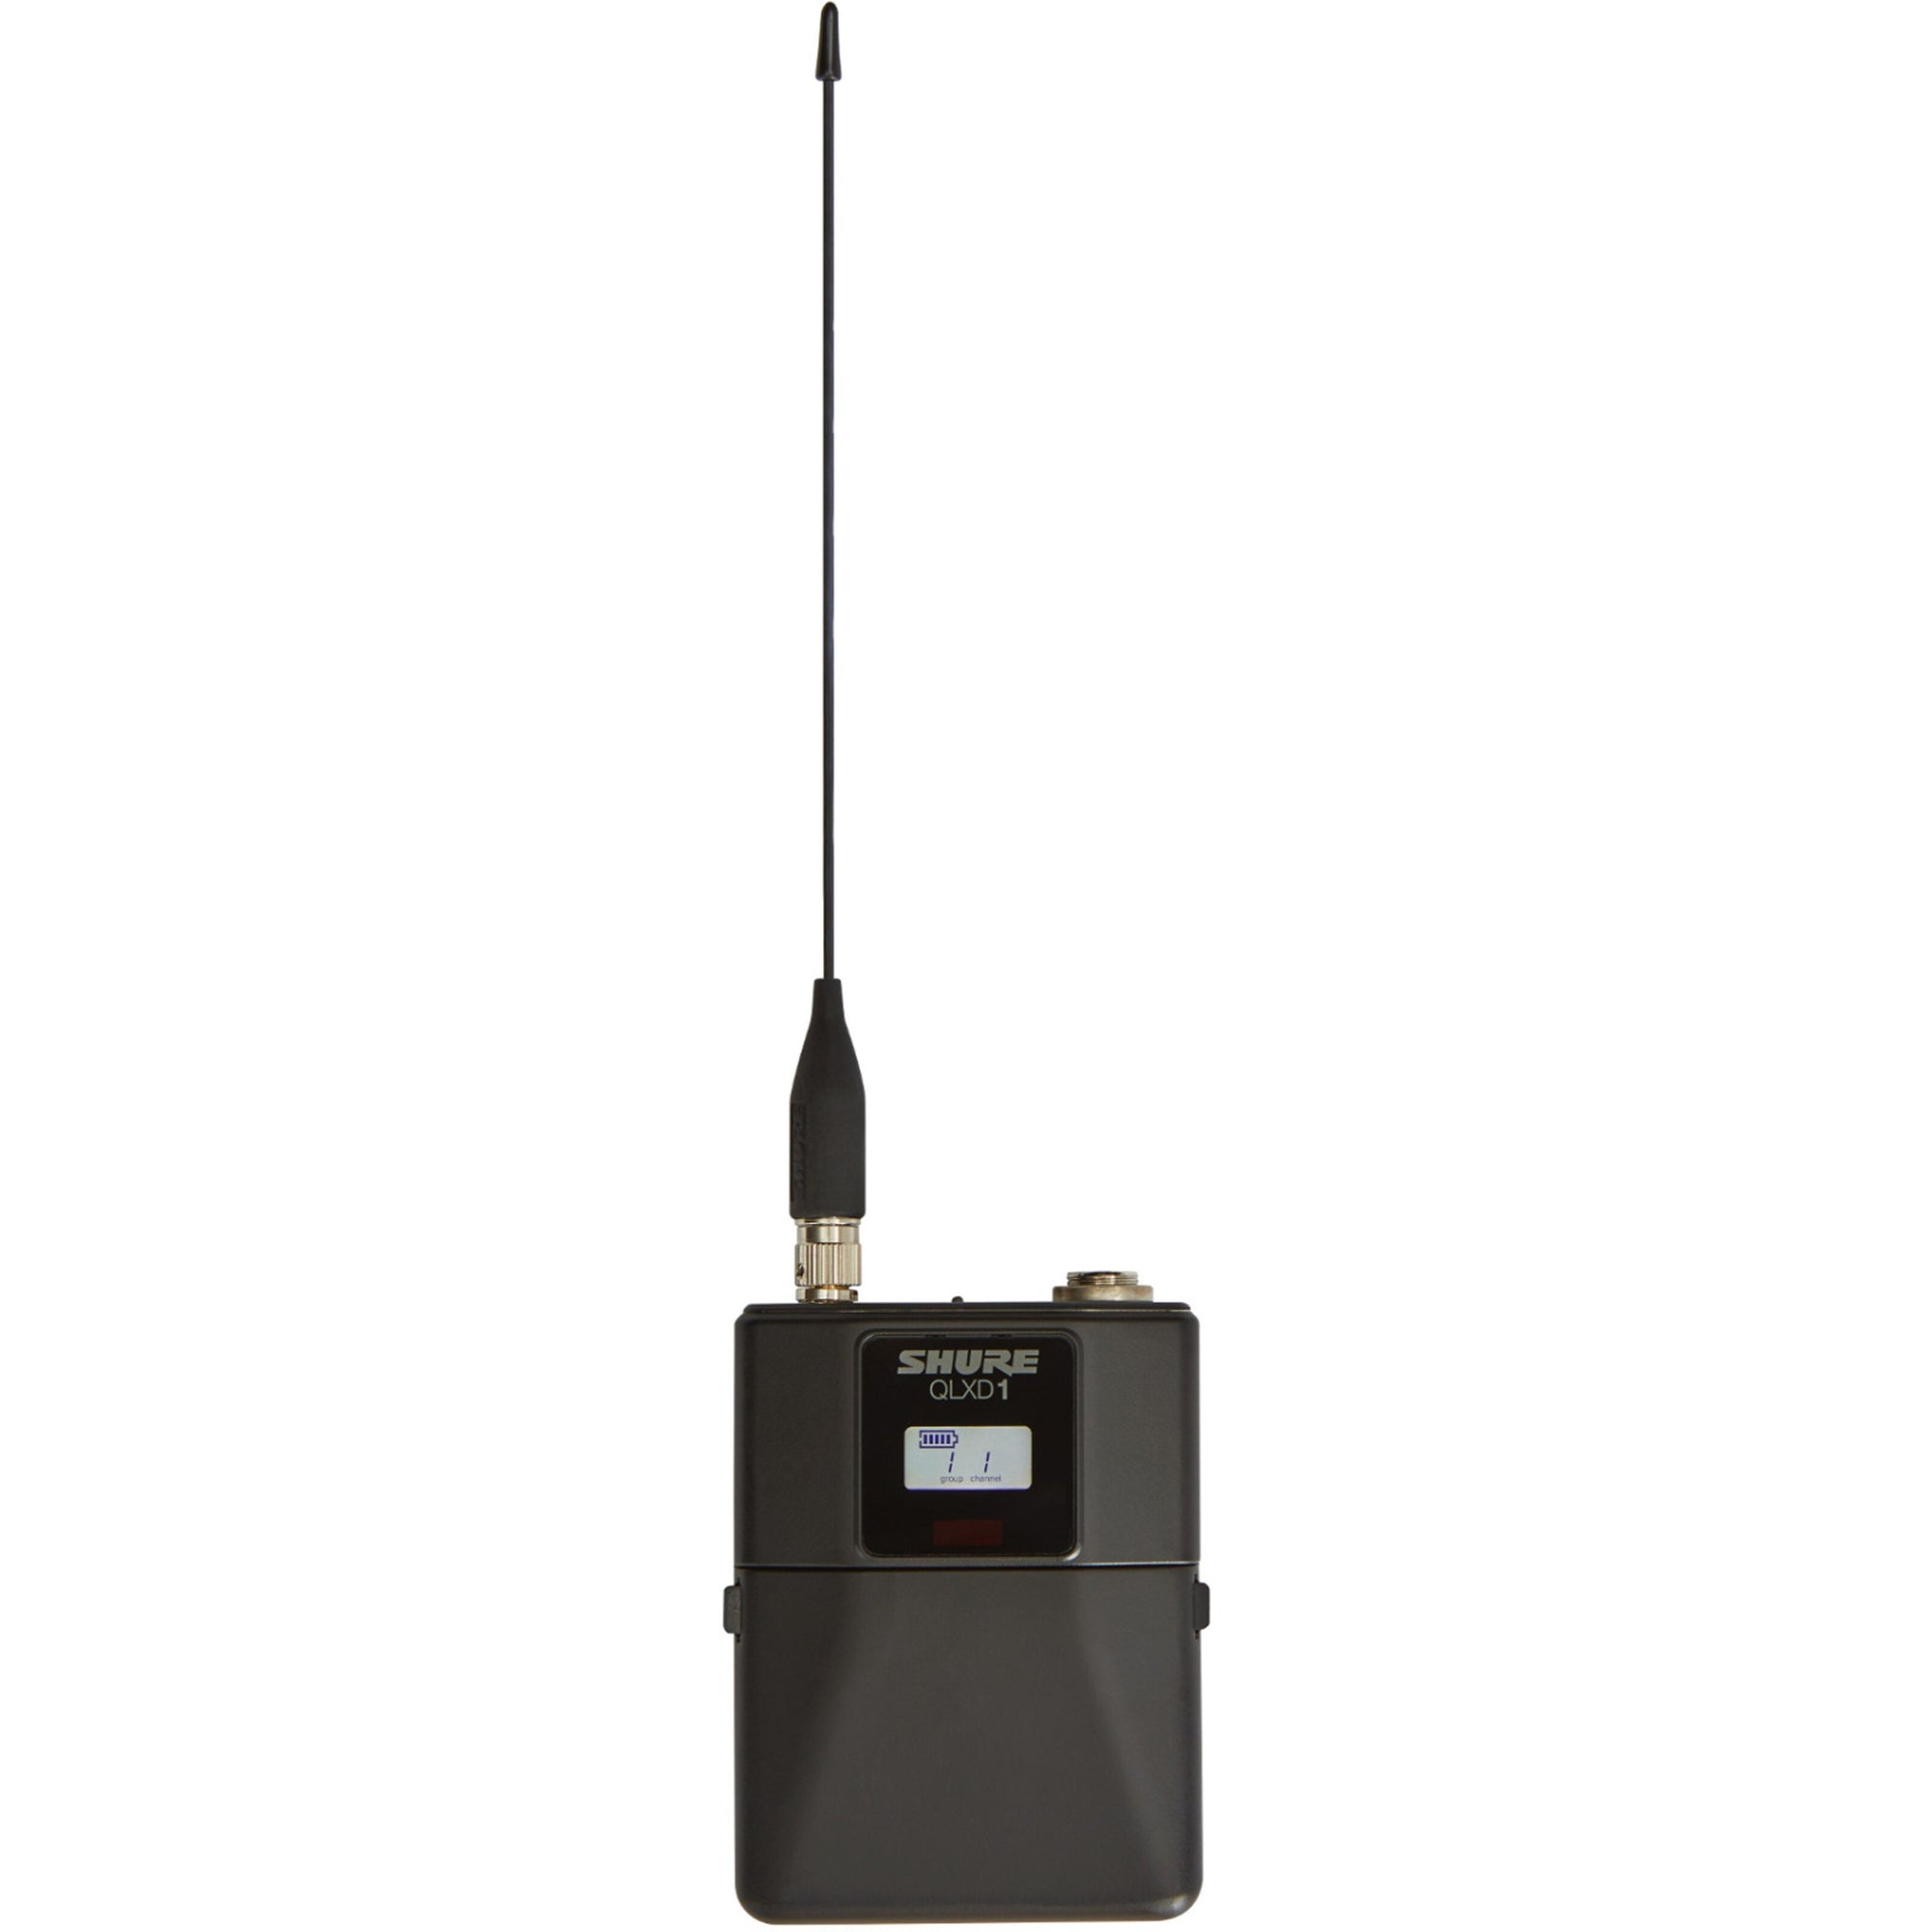 Shure QLXD1485 Wireless System with WL185 Lavalier Microphone, Band V50 (174 - 216 MHz)